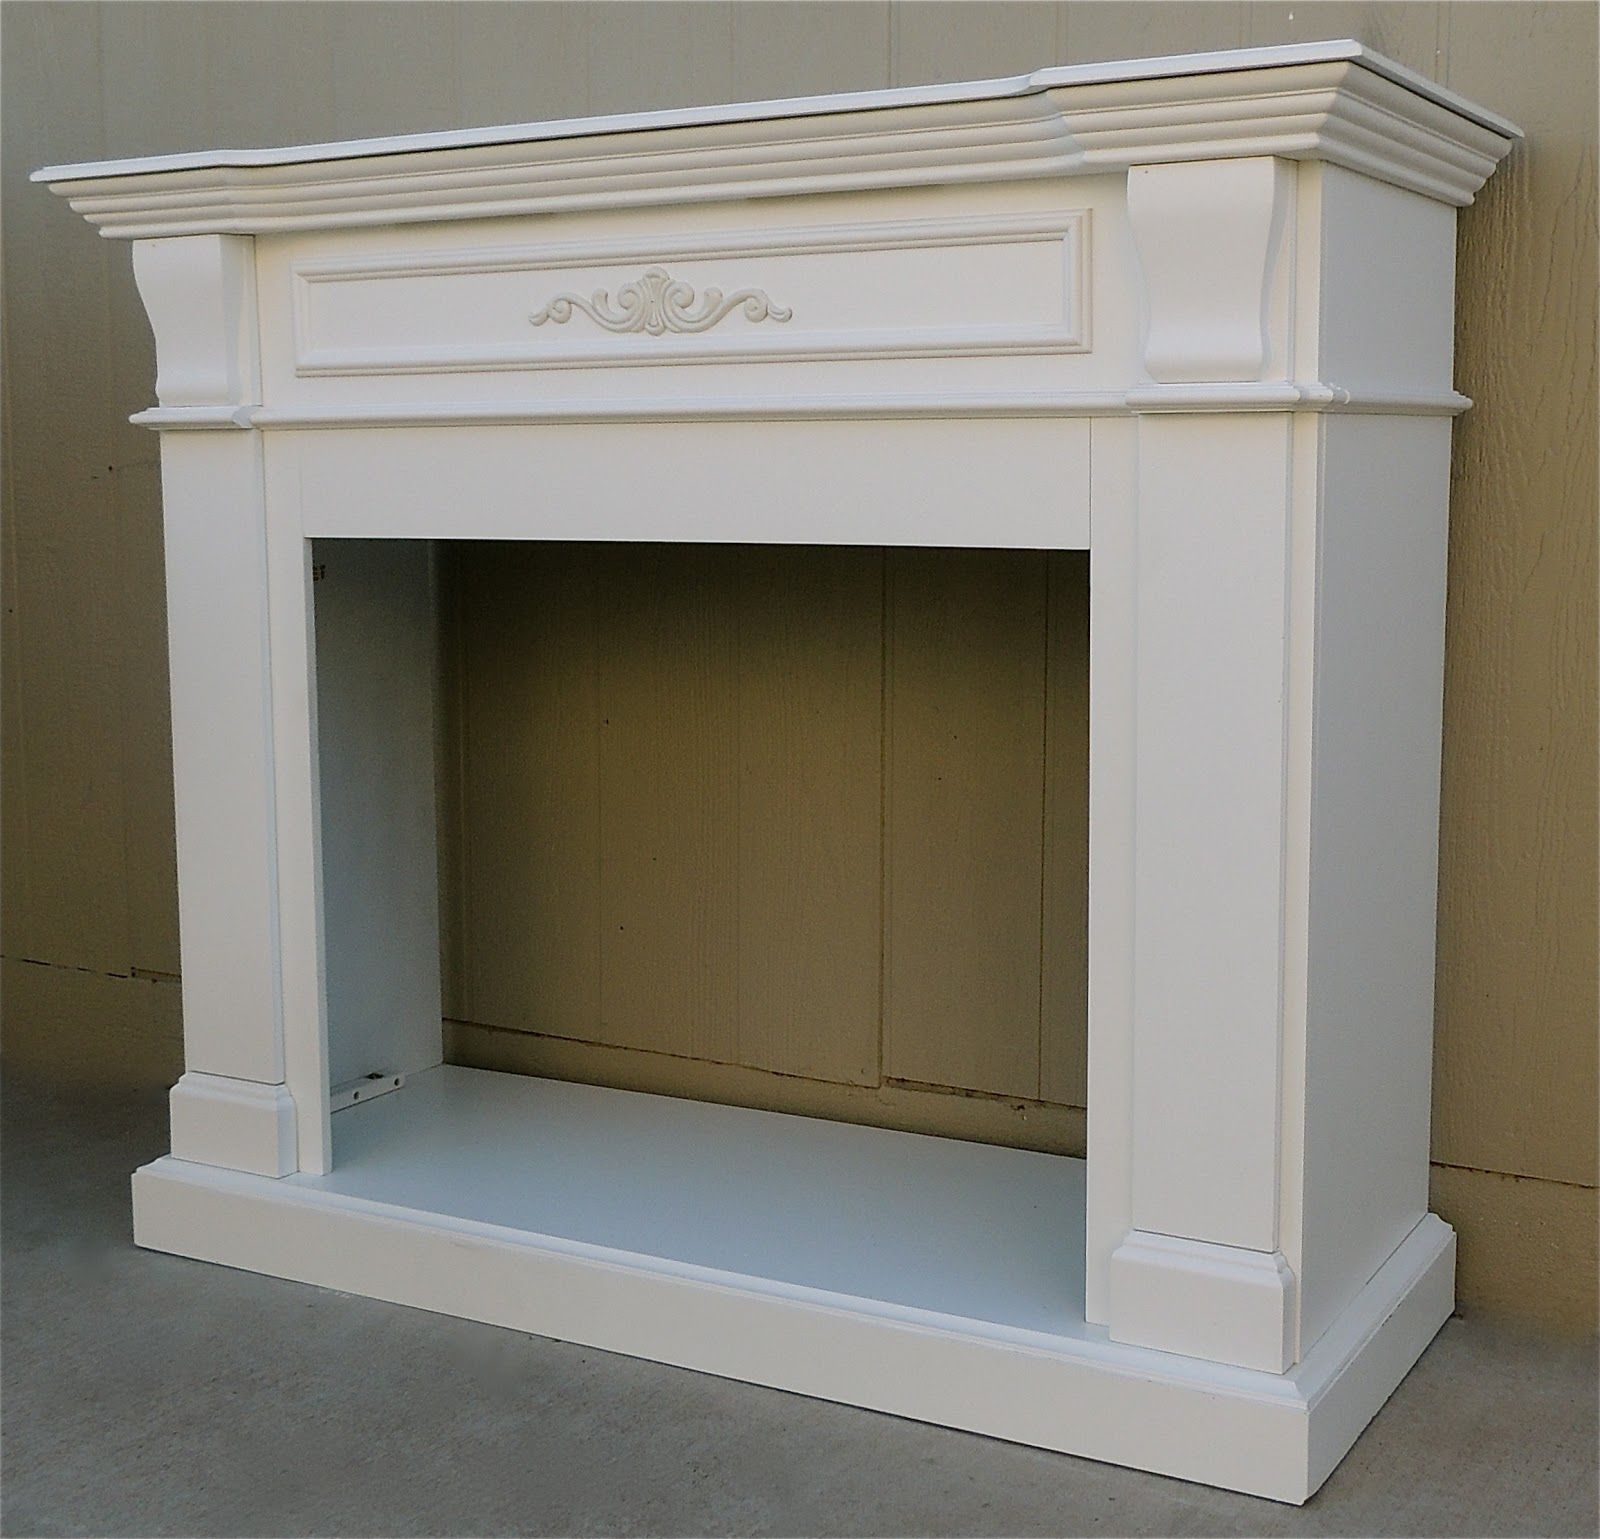 for sale is a beautiful fireplace mantle that has been painted a